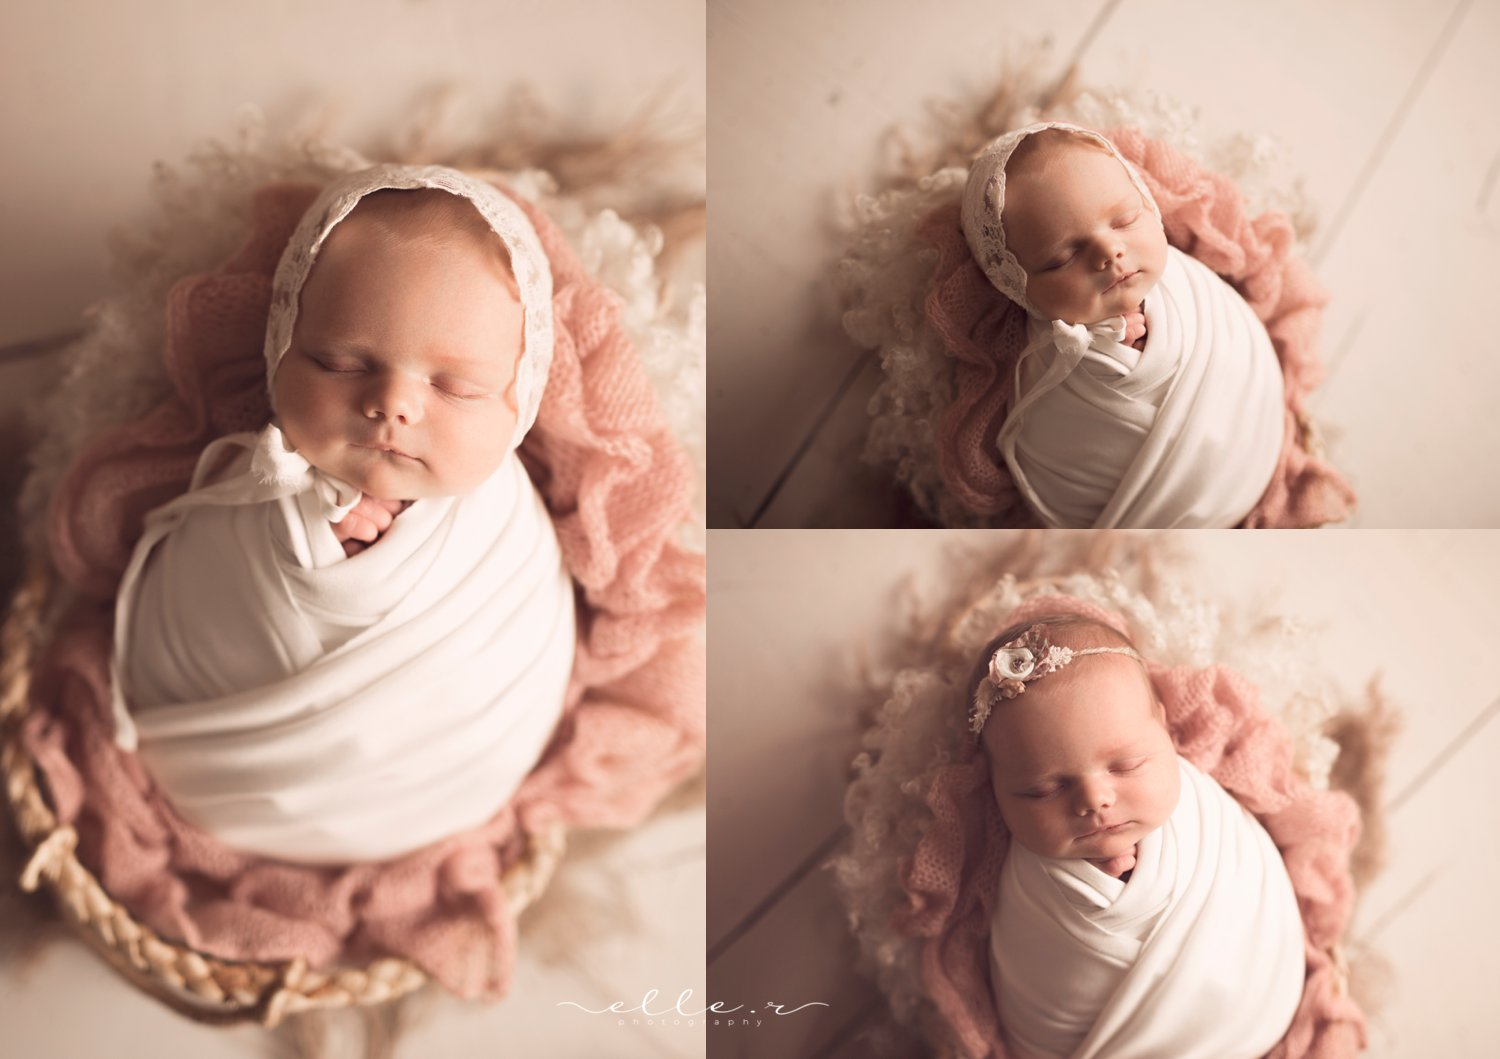 newborn studio photography calgary